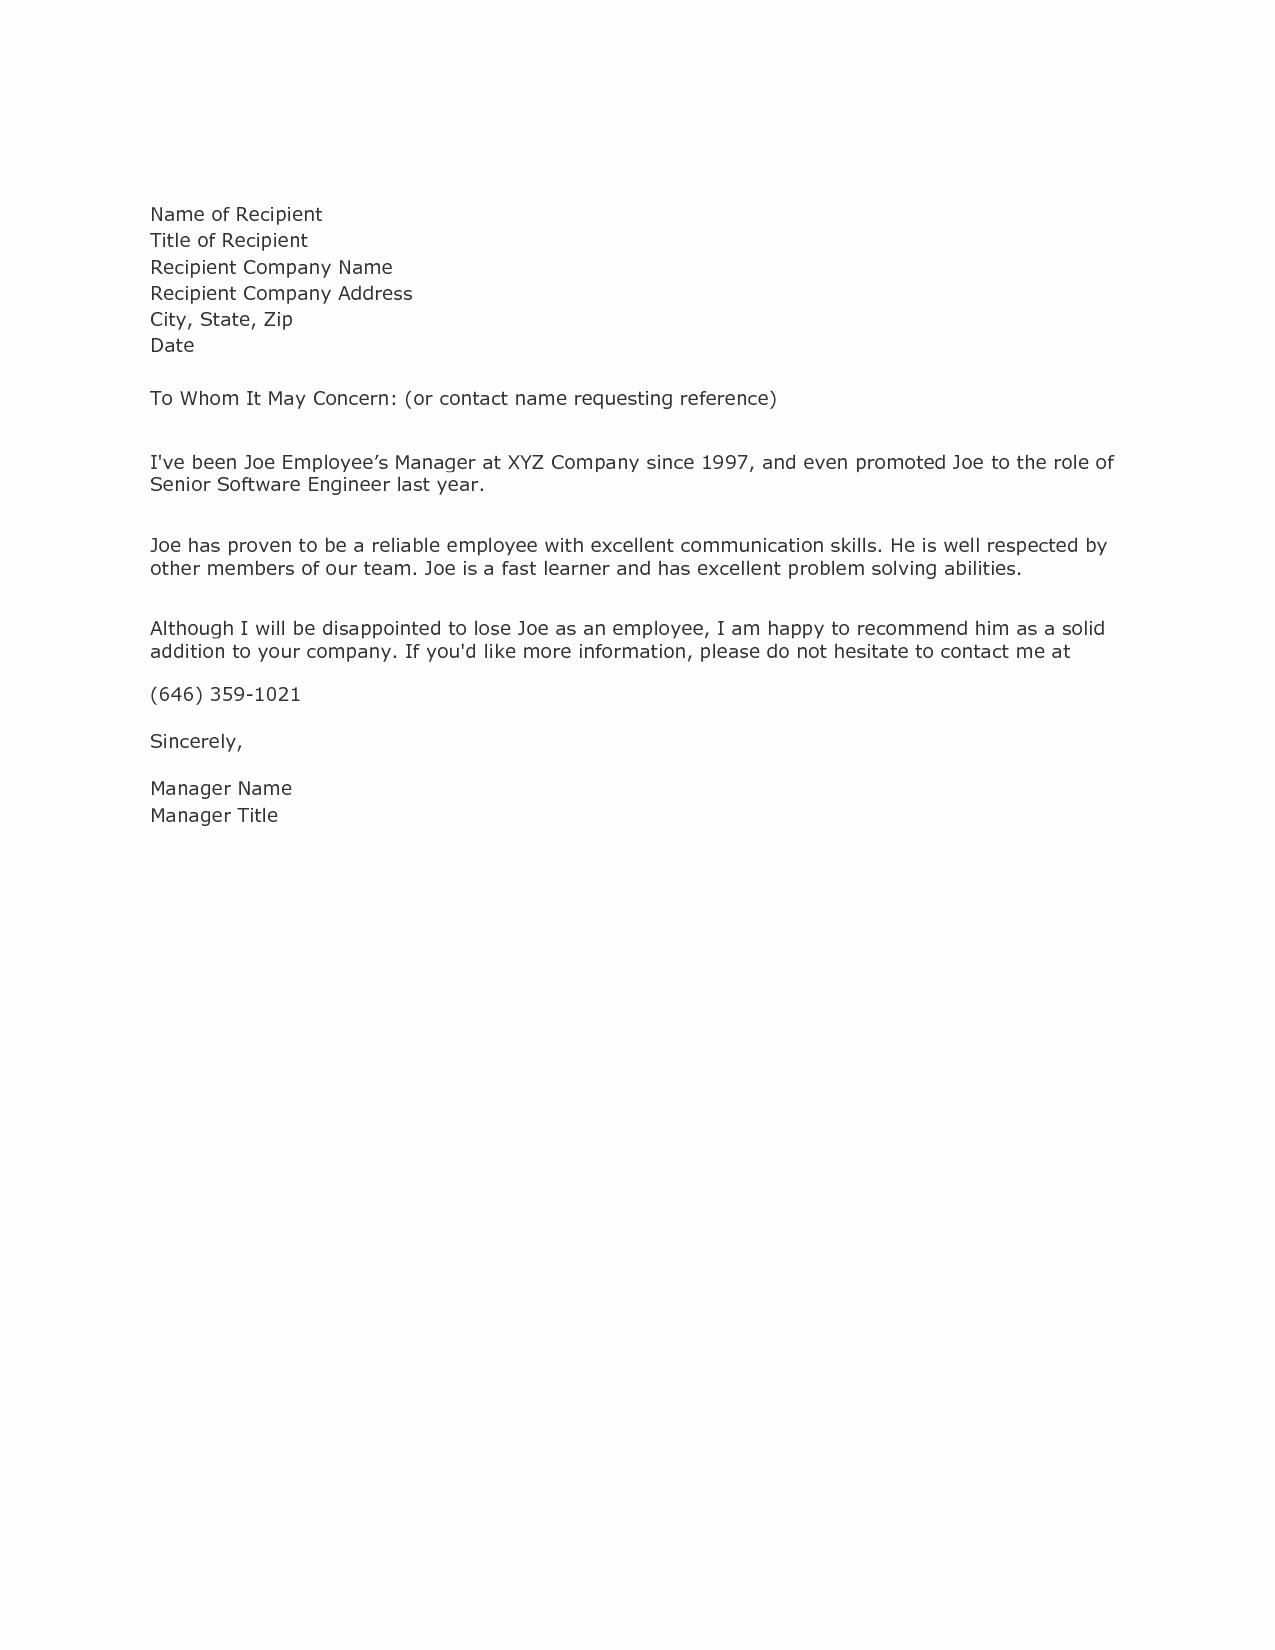 Letter Of Recommendation Request Samples Inspirational Example Reference Letterexamples Of Reference Letters